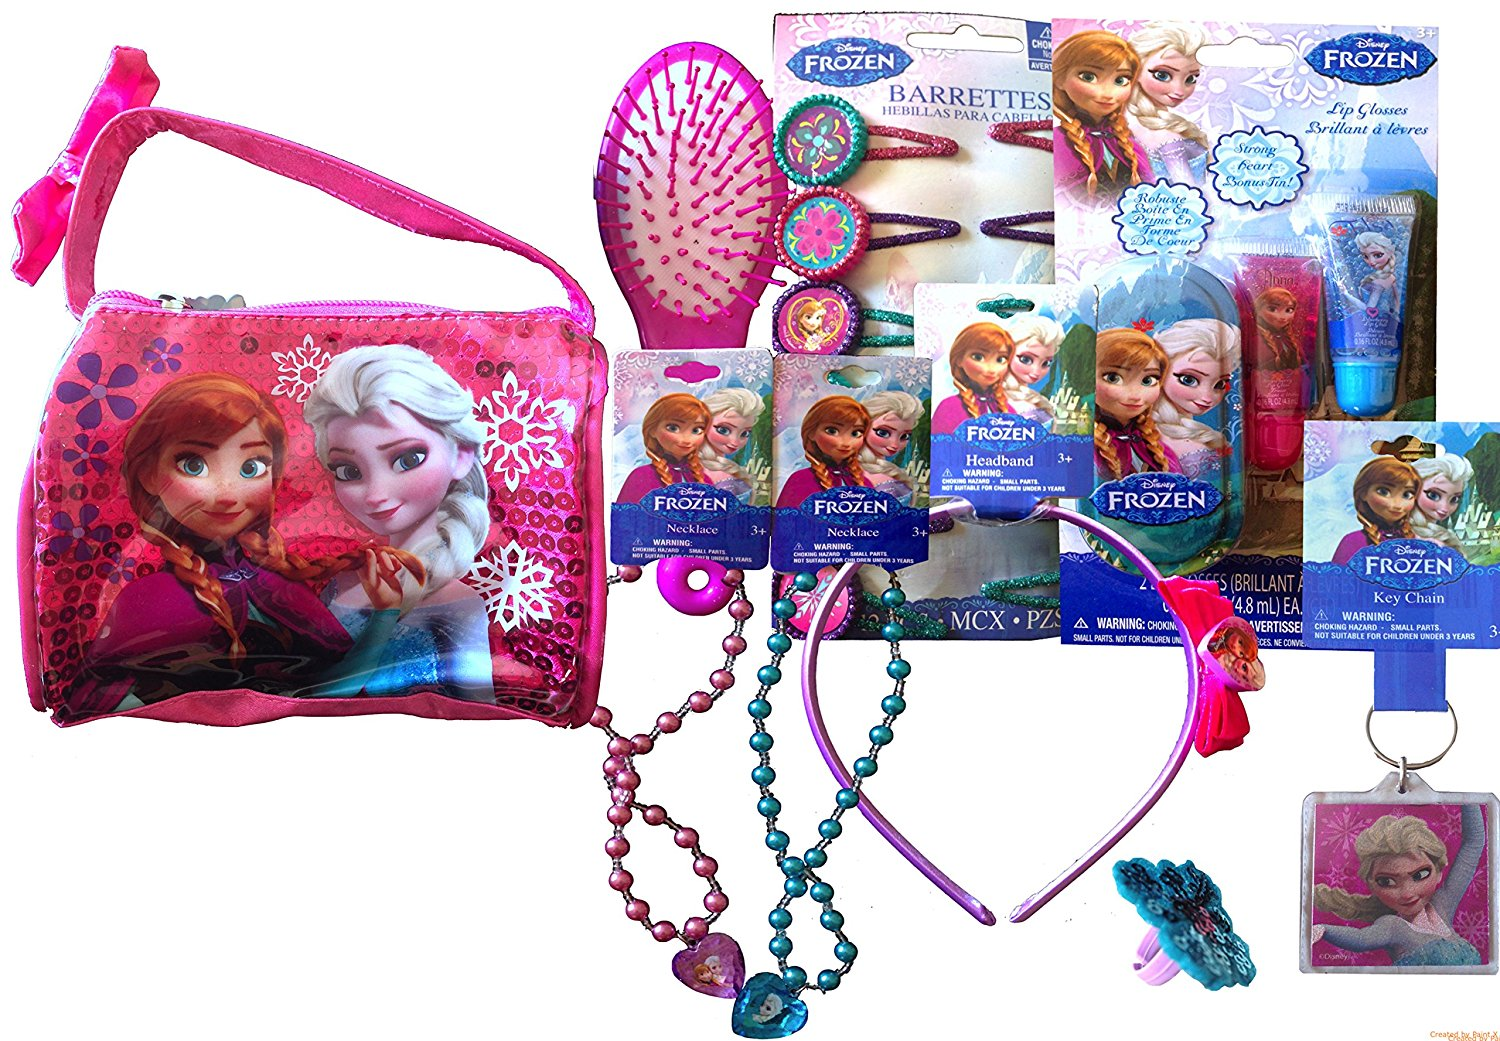 Disneyland Dress up Beauty Kit Pretend Play Handbag Disney Frozen Carry Around Bag with Accessories, Includes 1 Musical Hair Brush , 1 Headband, 1 Ring, 2 Lip Gloss with Bonus Tin to Hold In, 12 Hair Barrettes, 2 Bracelets , 2 Necklaces (HAND BAG VARIATION 5)